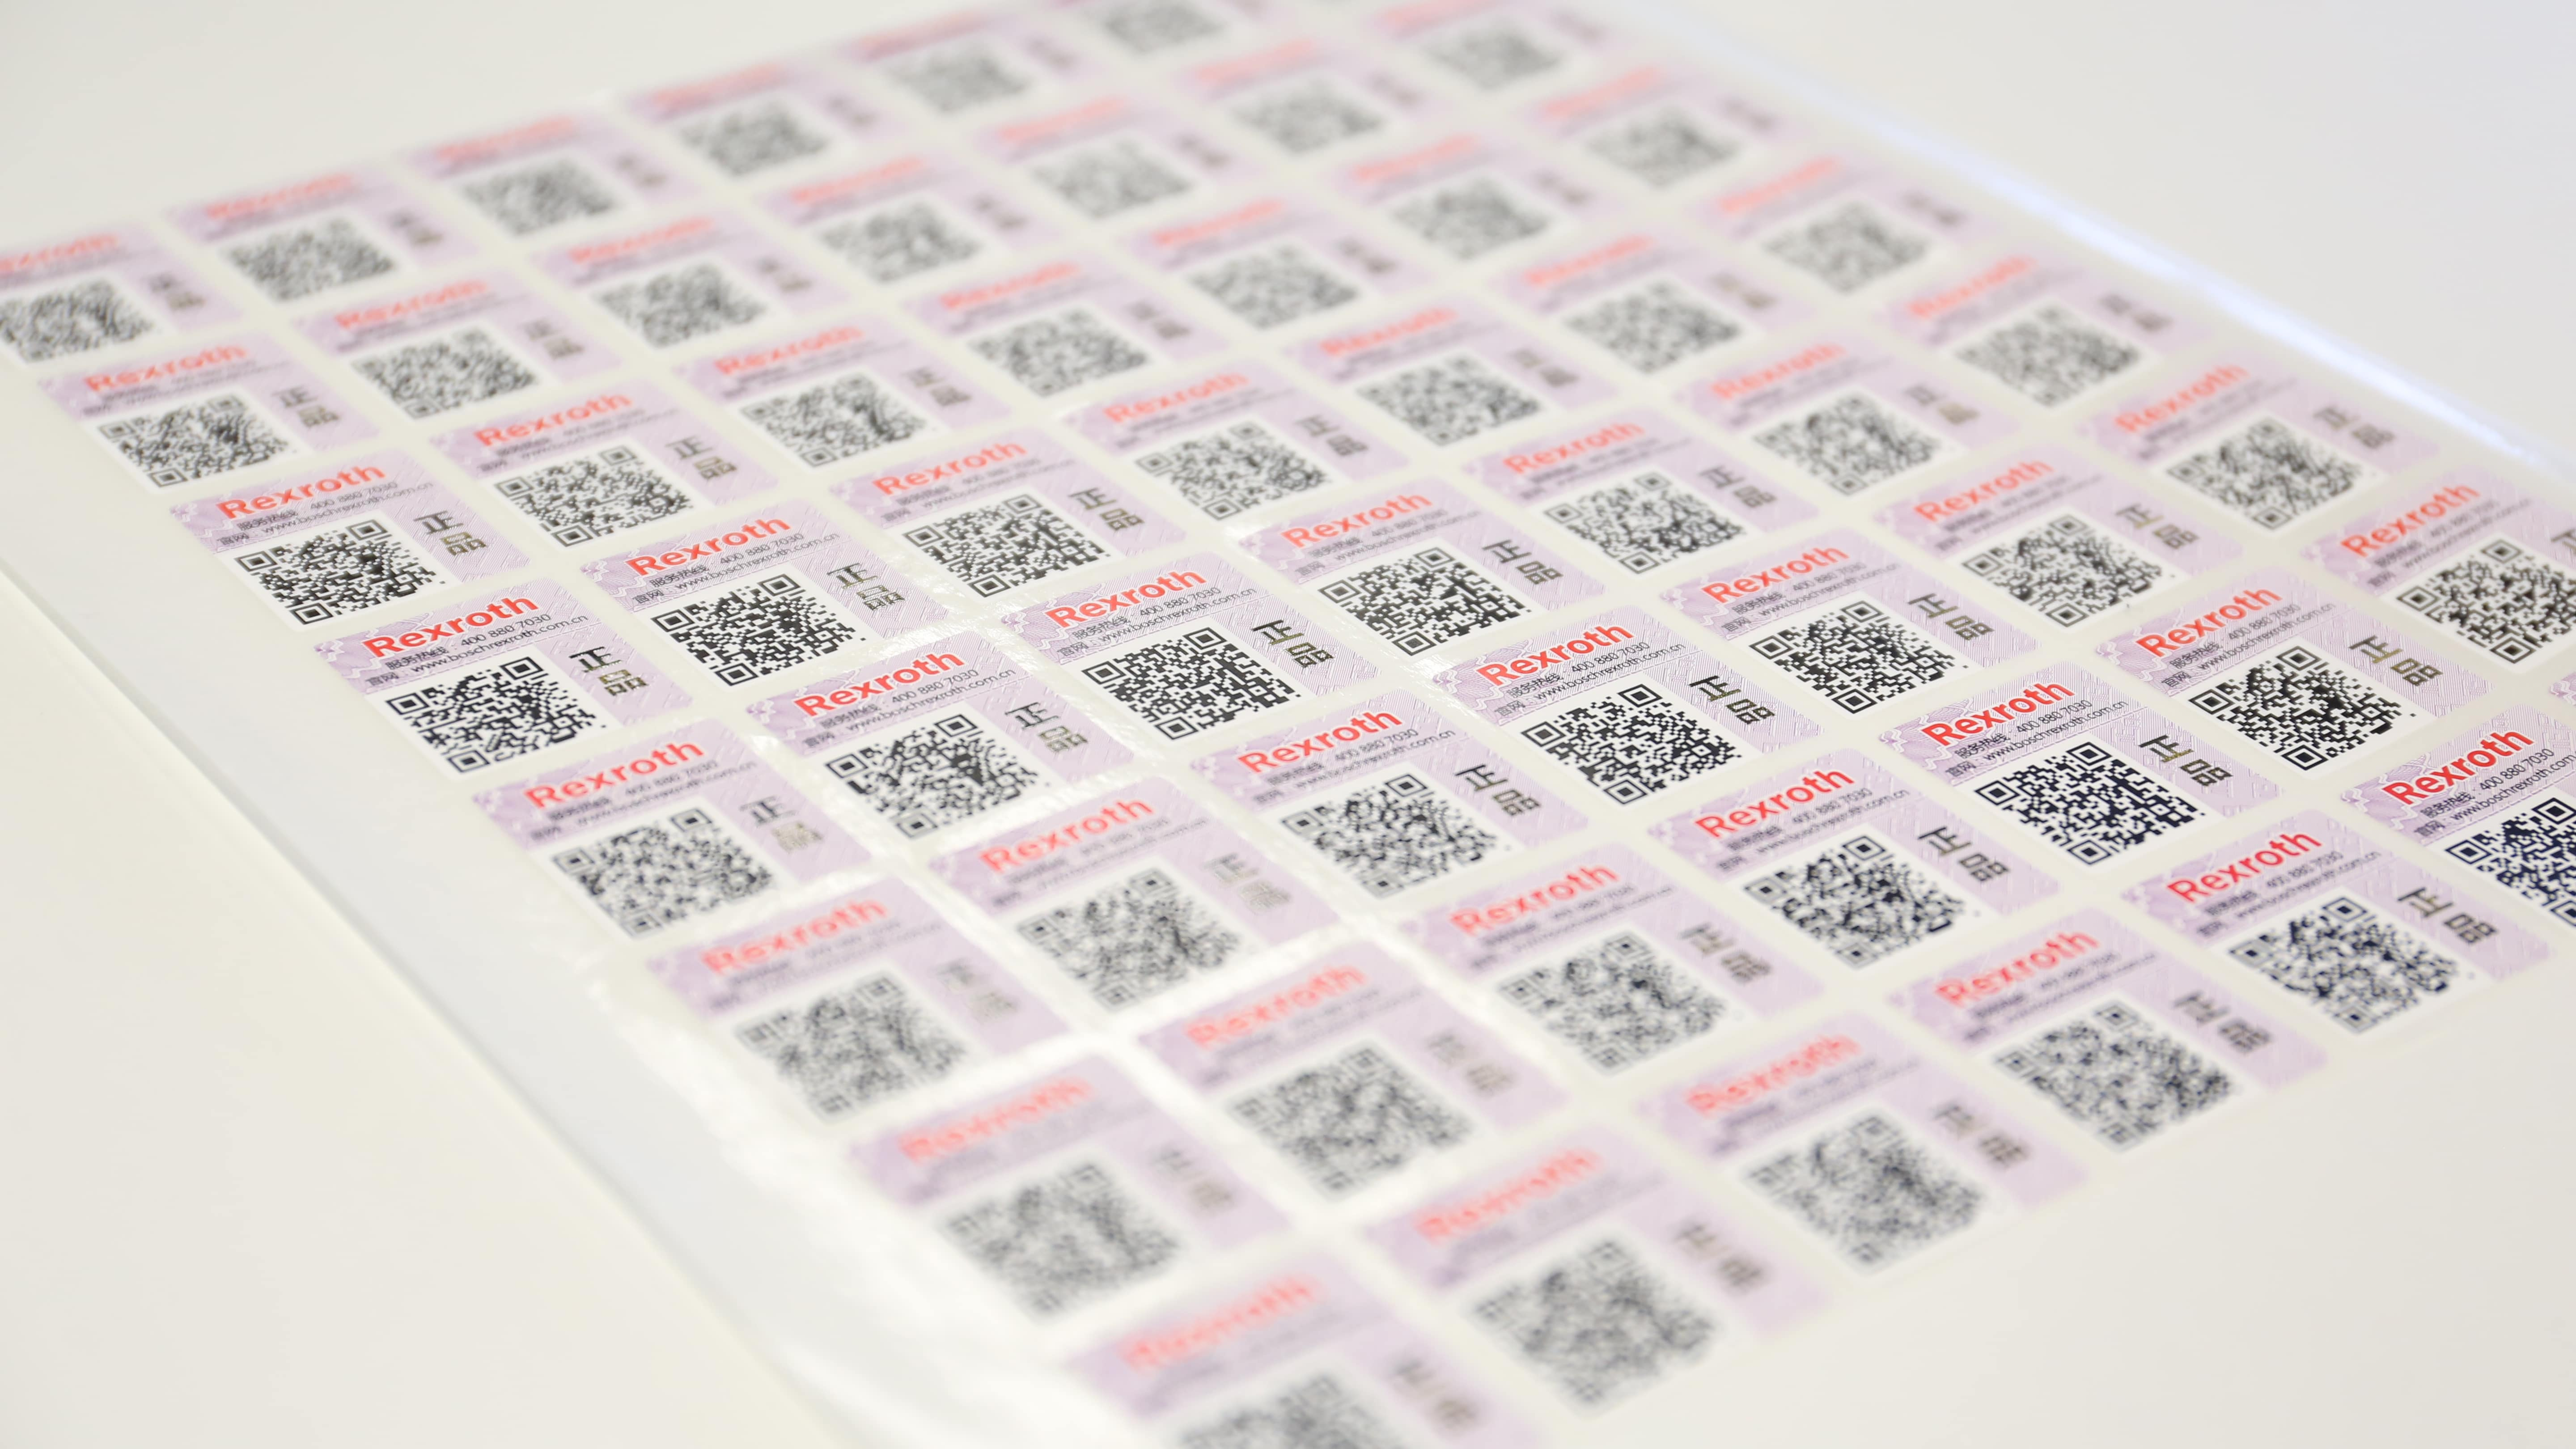 Photo of the enhanced QR codes used in the artificial fingerprint solution which is part of the Secure Product Fingerprint.